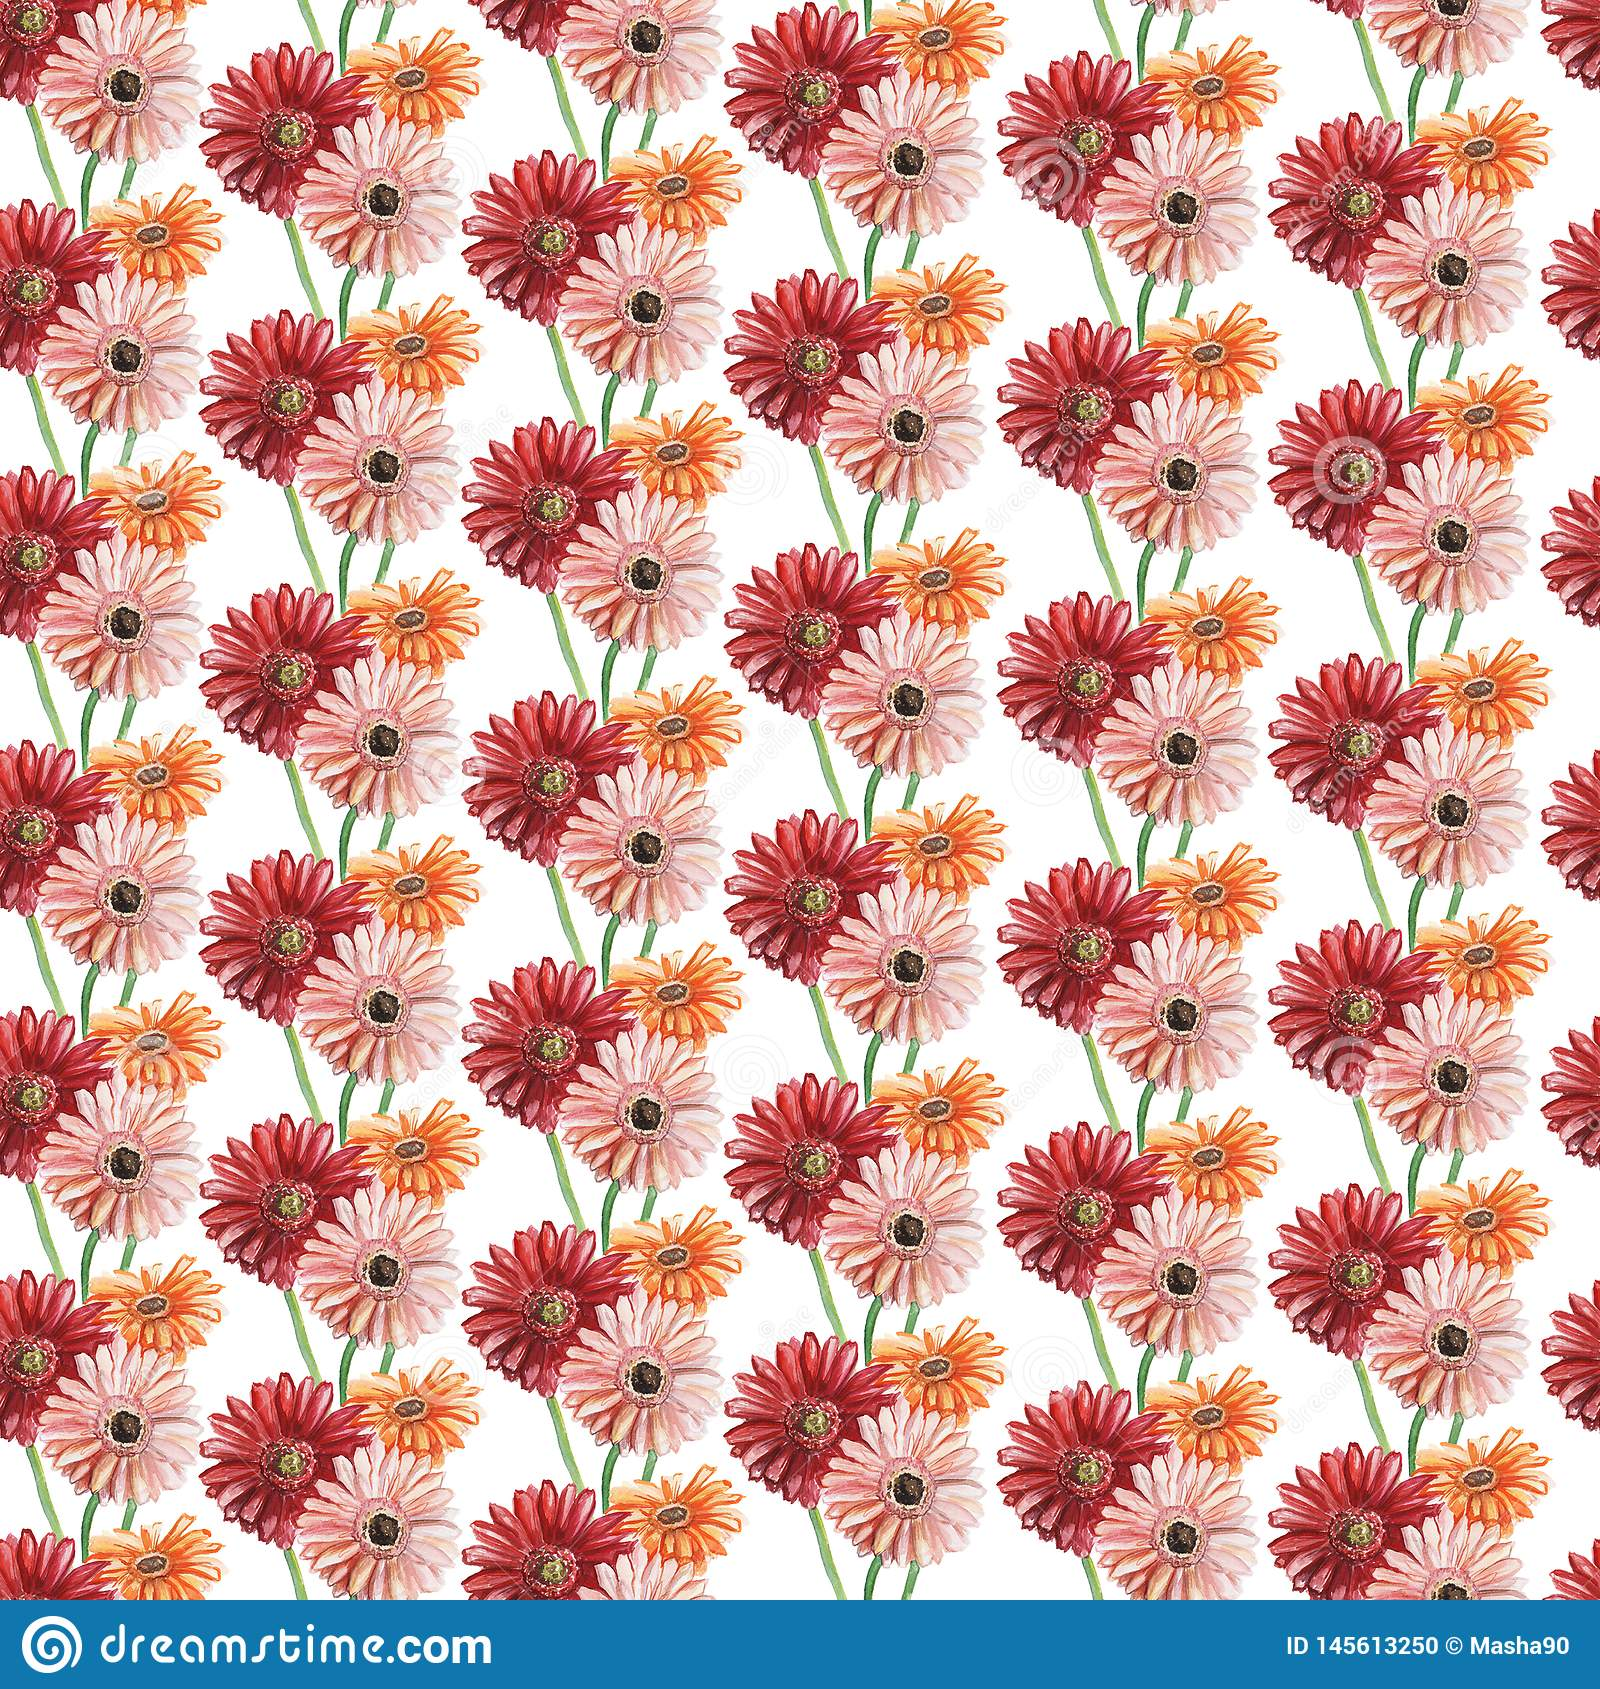 Seamless pattern with pink, red and orange gerberas. Watercolor illustration.